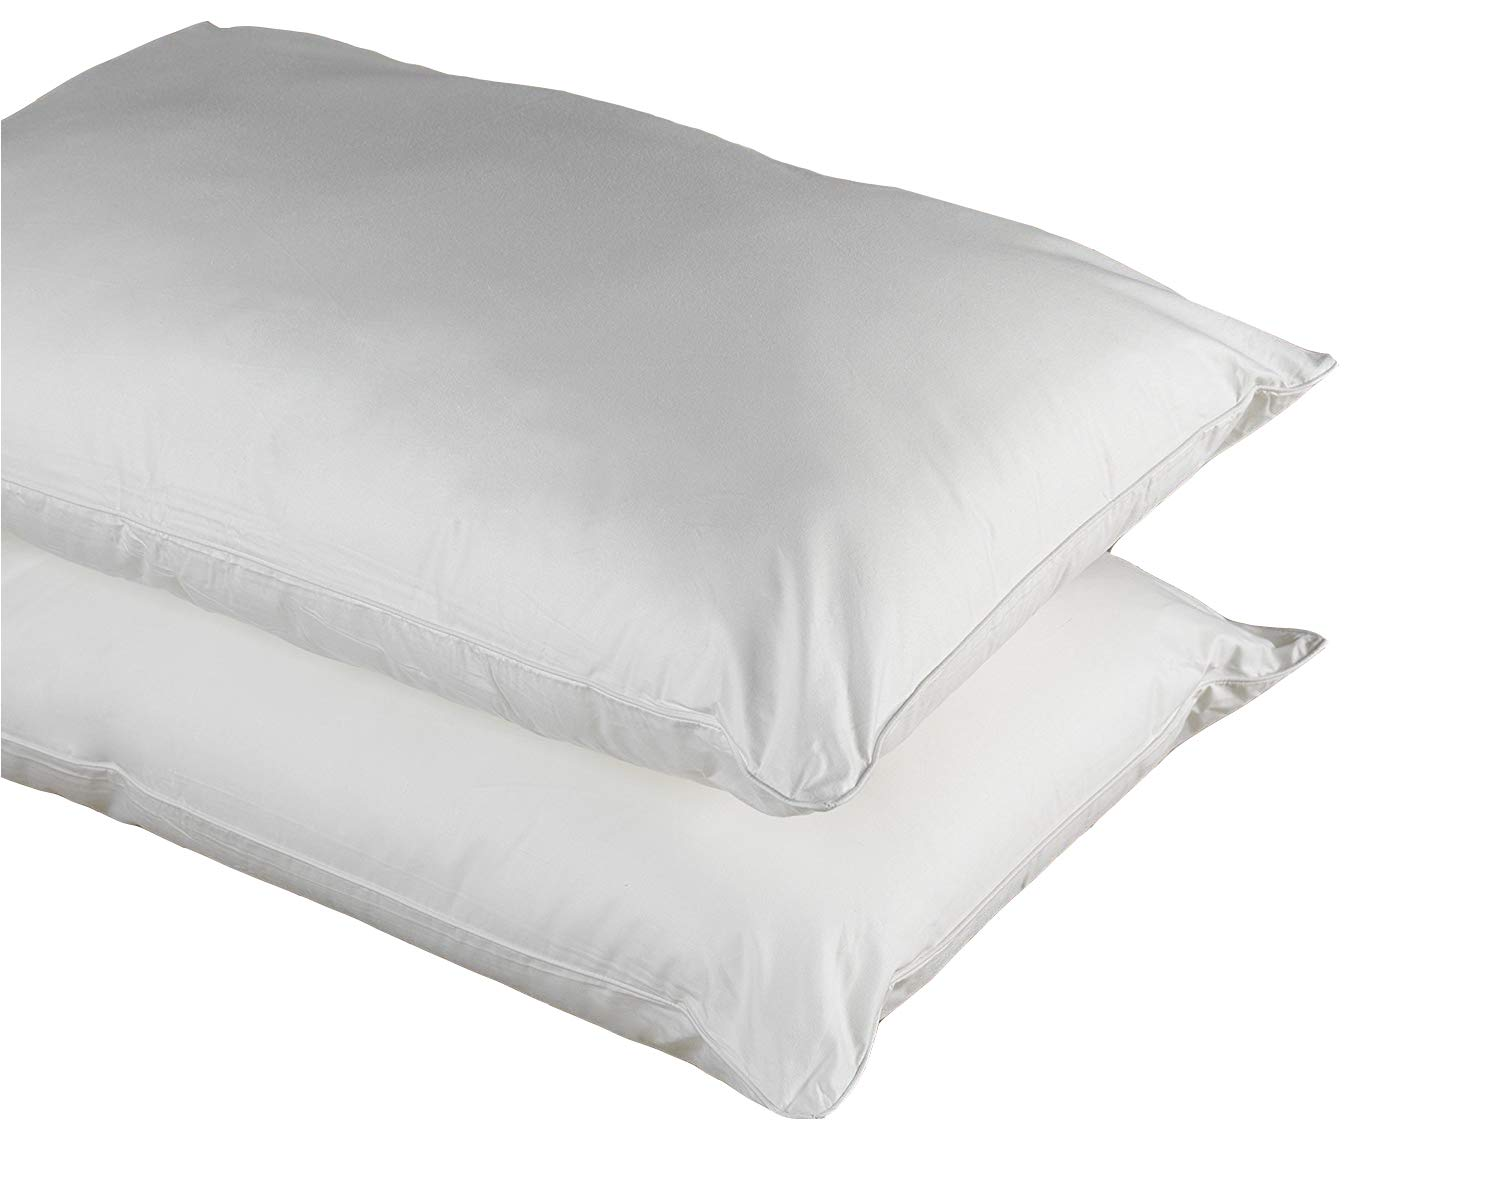 Original Sleep Company Pure Cotton Anti Allergy Pillow Pair with Spiral Fibre Filling - Ideal for Asthma, Eczema and Allergy Sufferers